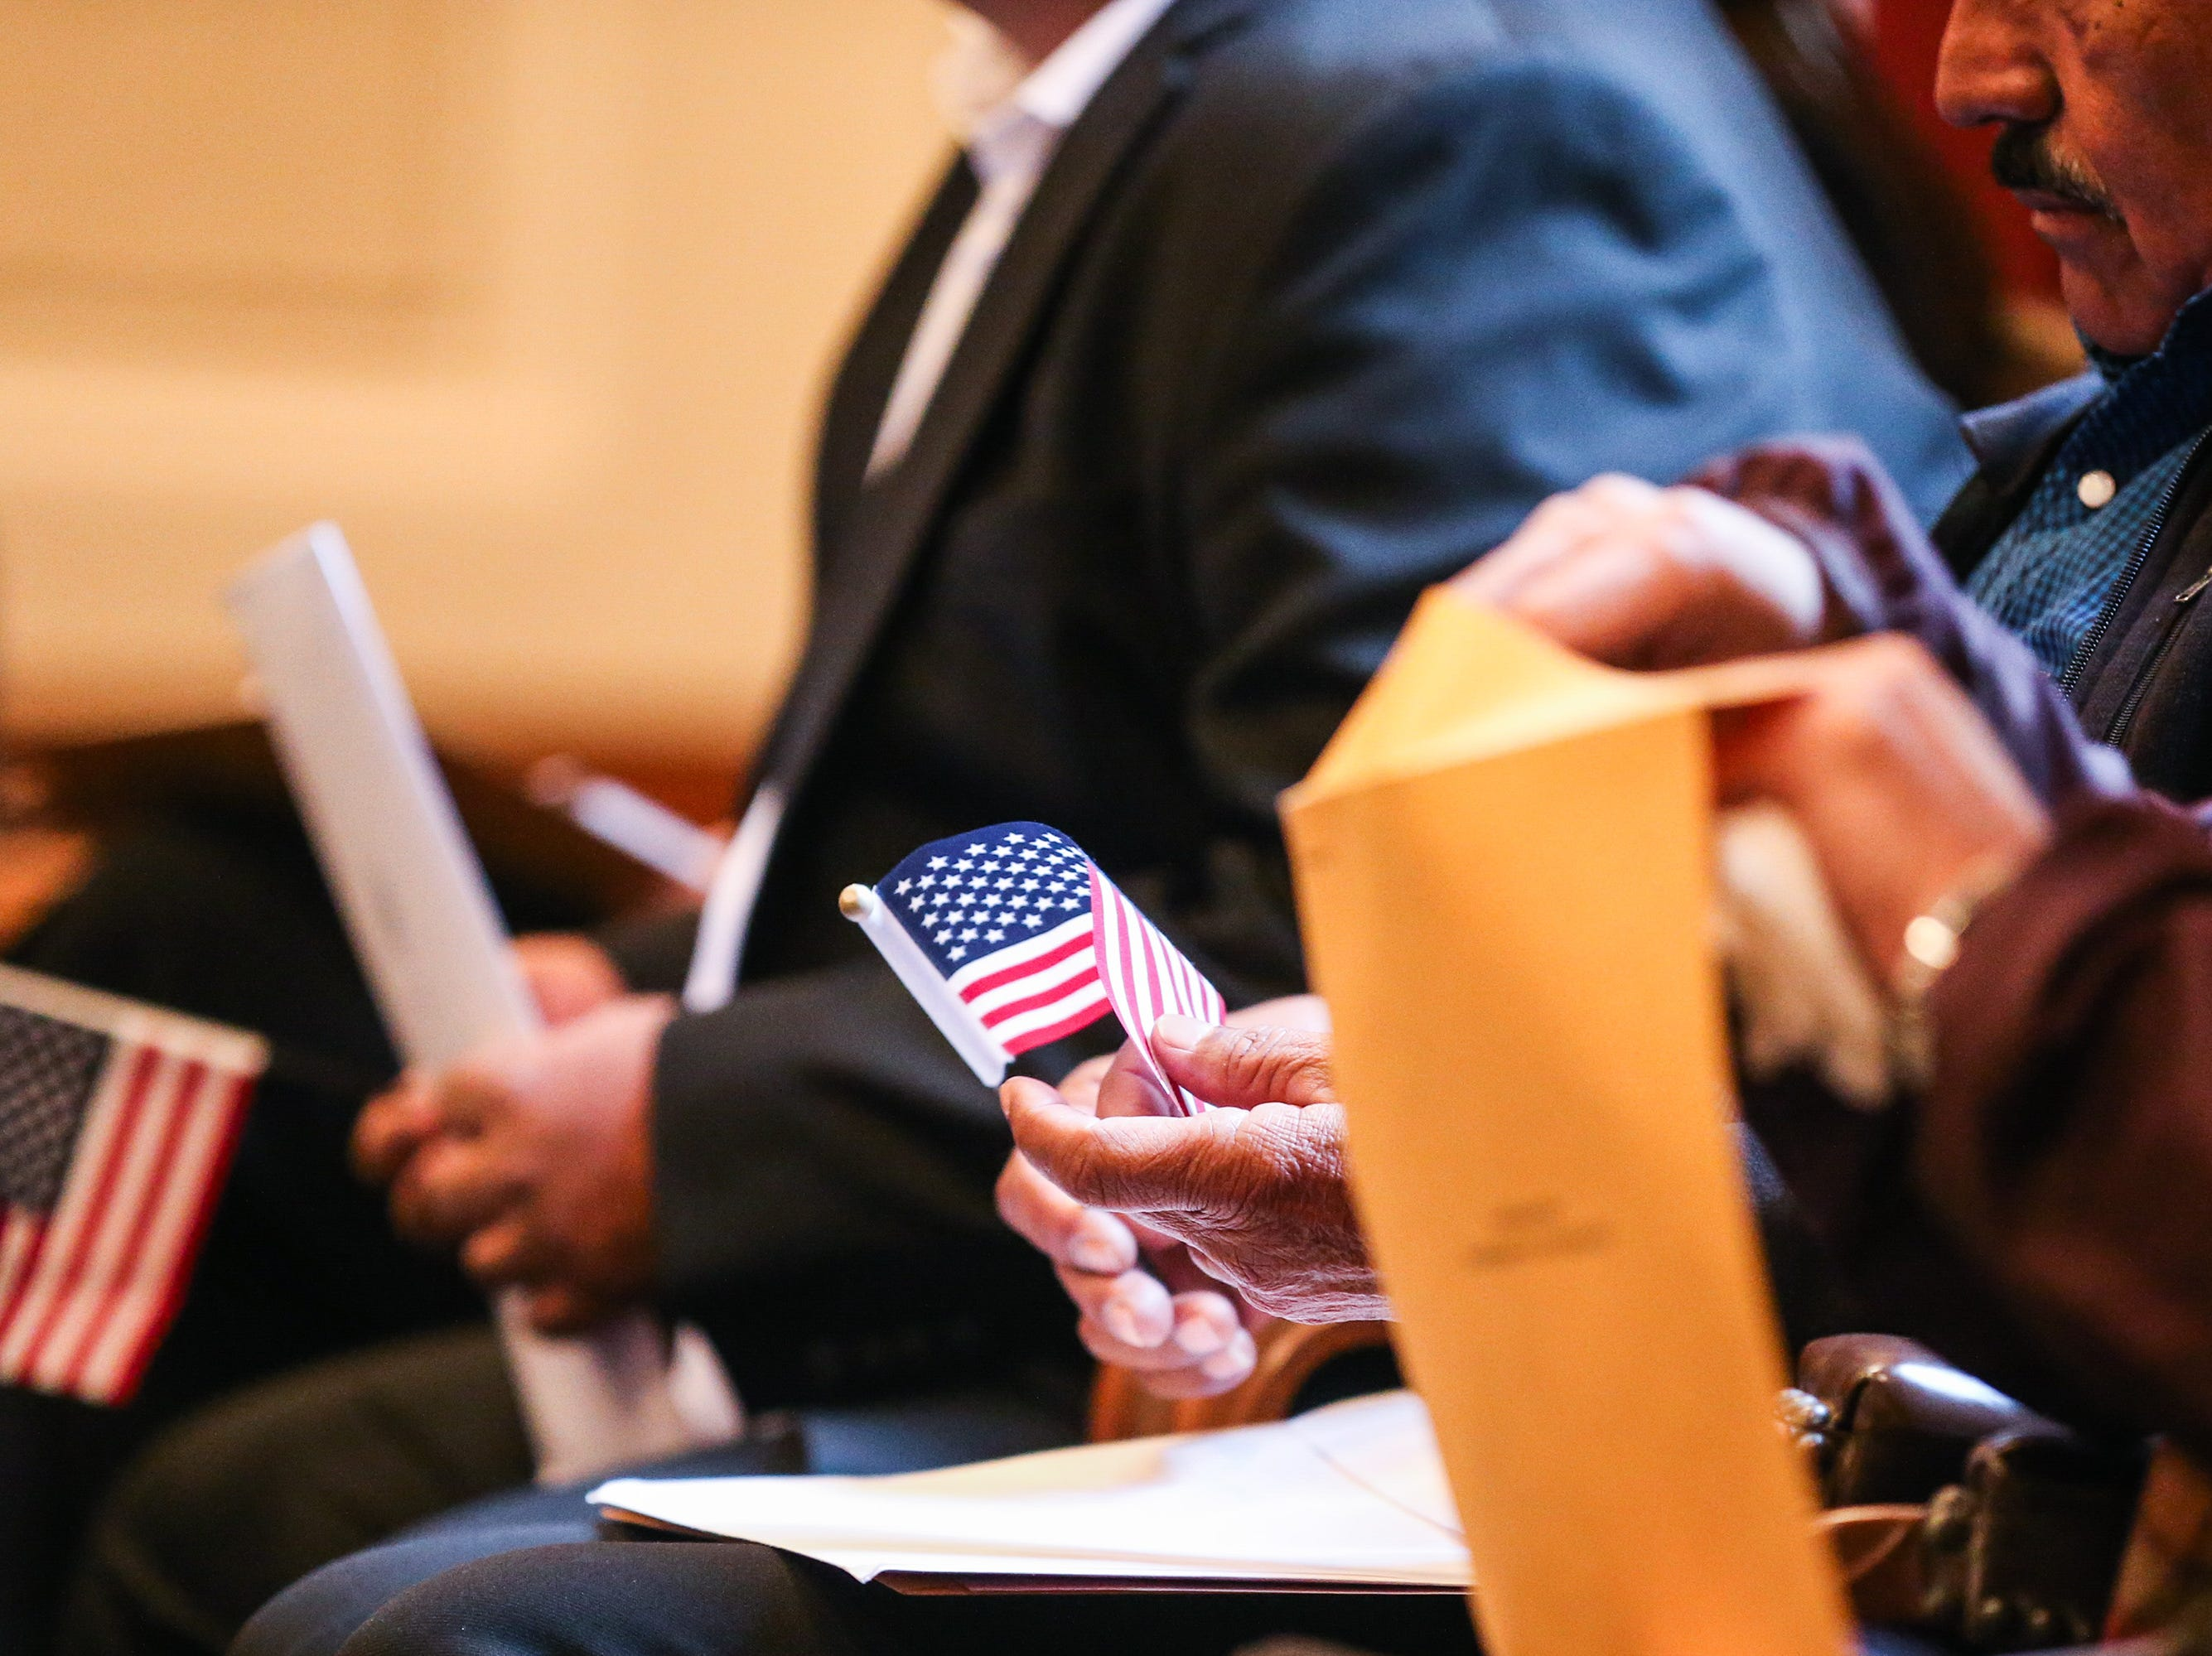 An applicant holds a flag during the naturalization ceremony Wednesday, Jan. 8, 2019, at the O.C. Fisher Federal Building.